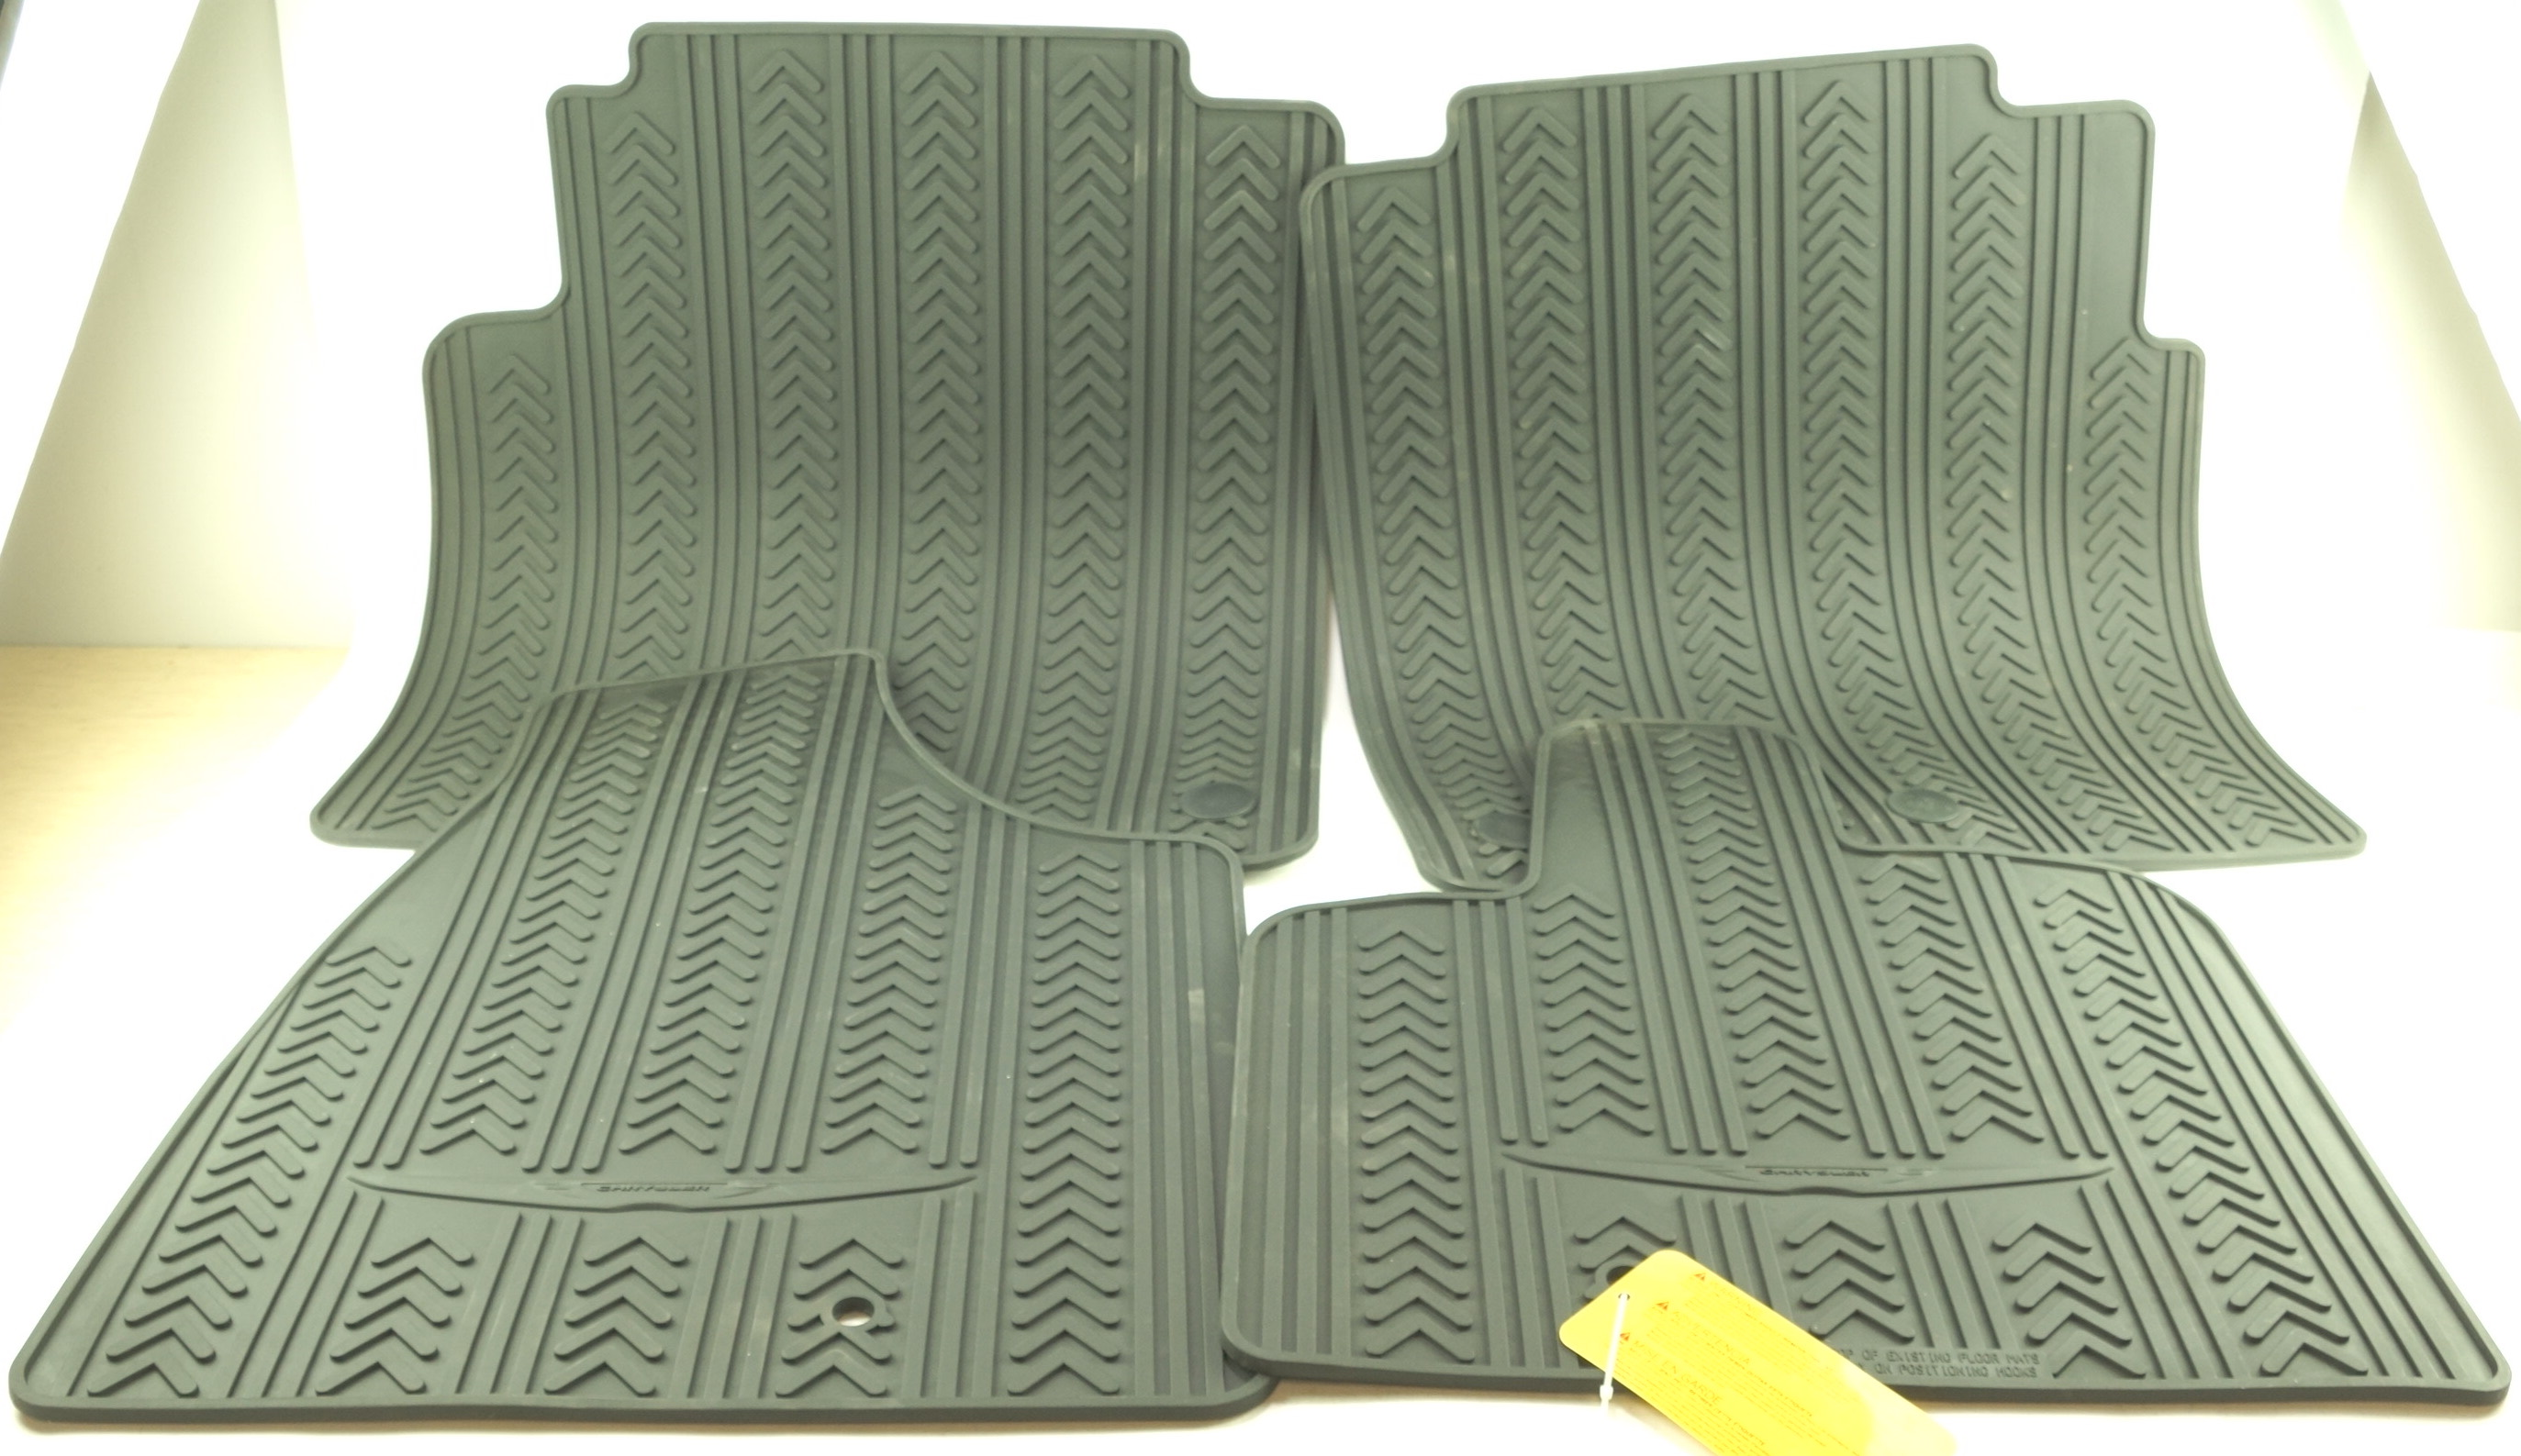 New OEM 82213479 Mopar Town & Country Front & 2nd Row Black Rubber Floor Mats - image 1